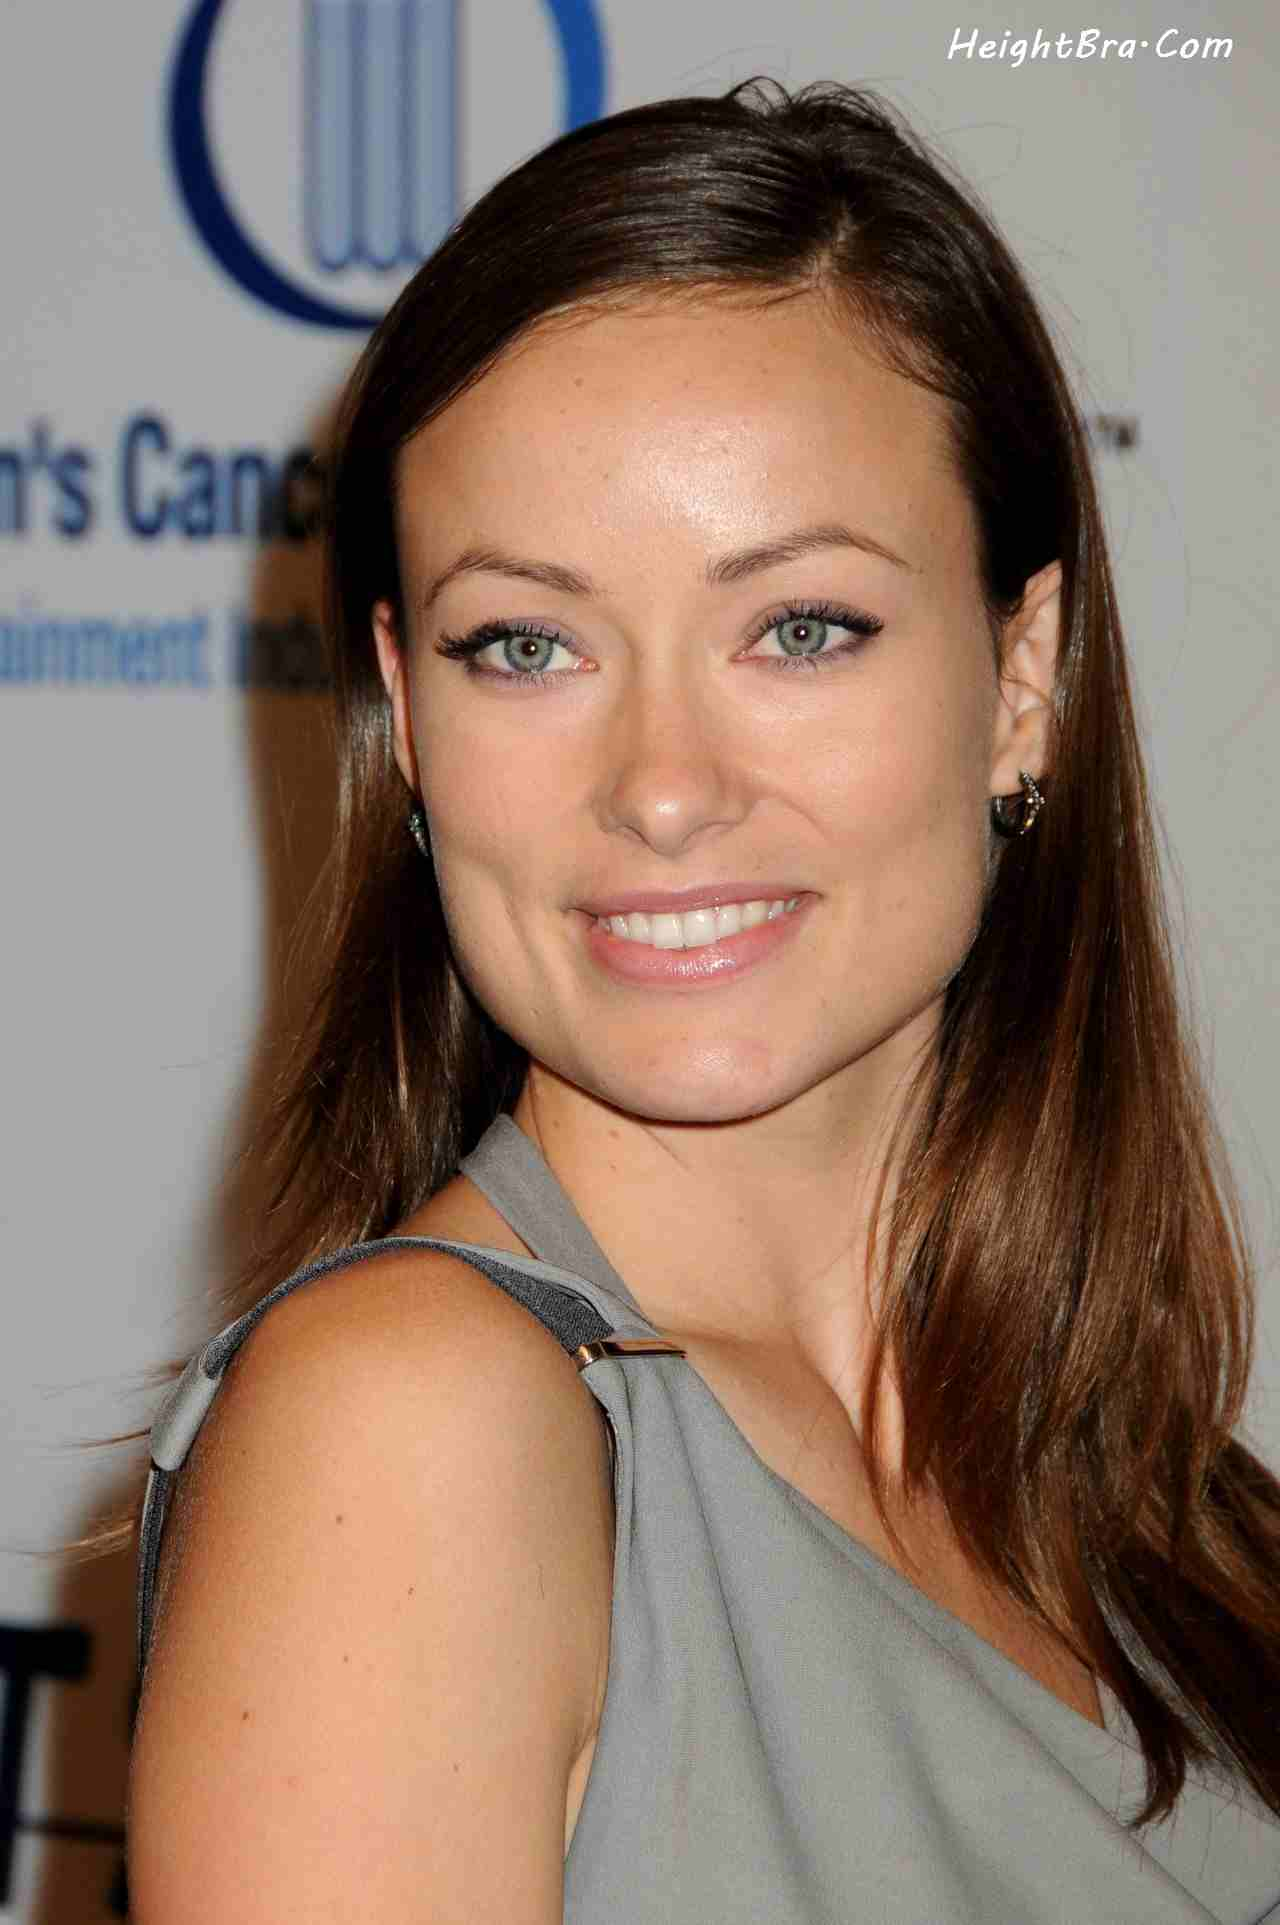 Olivia wilde boobs size voltagebd Image collections